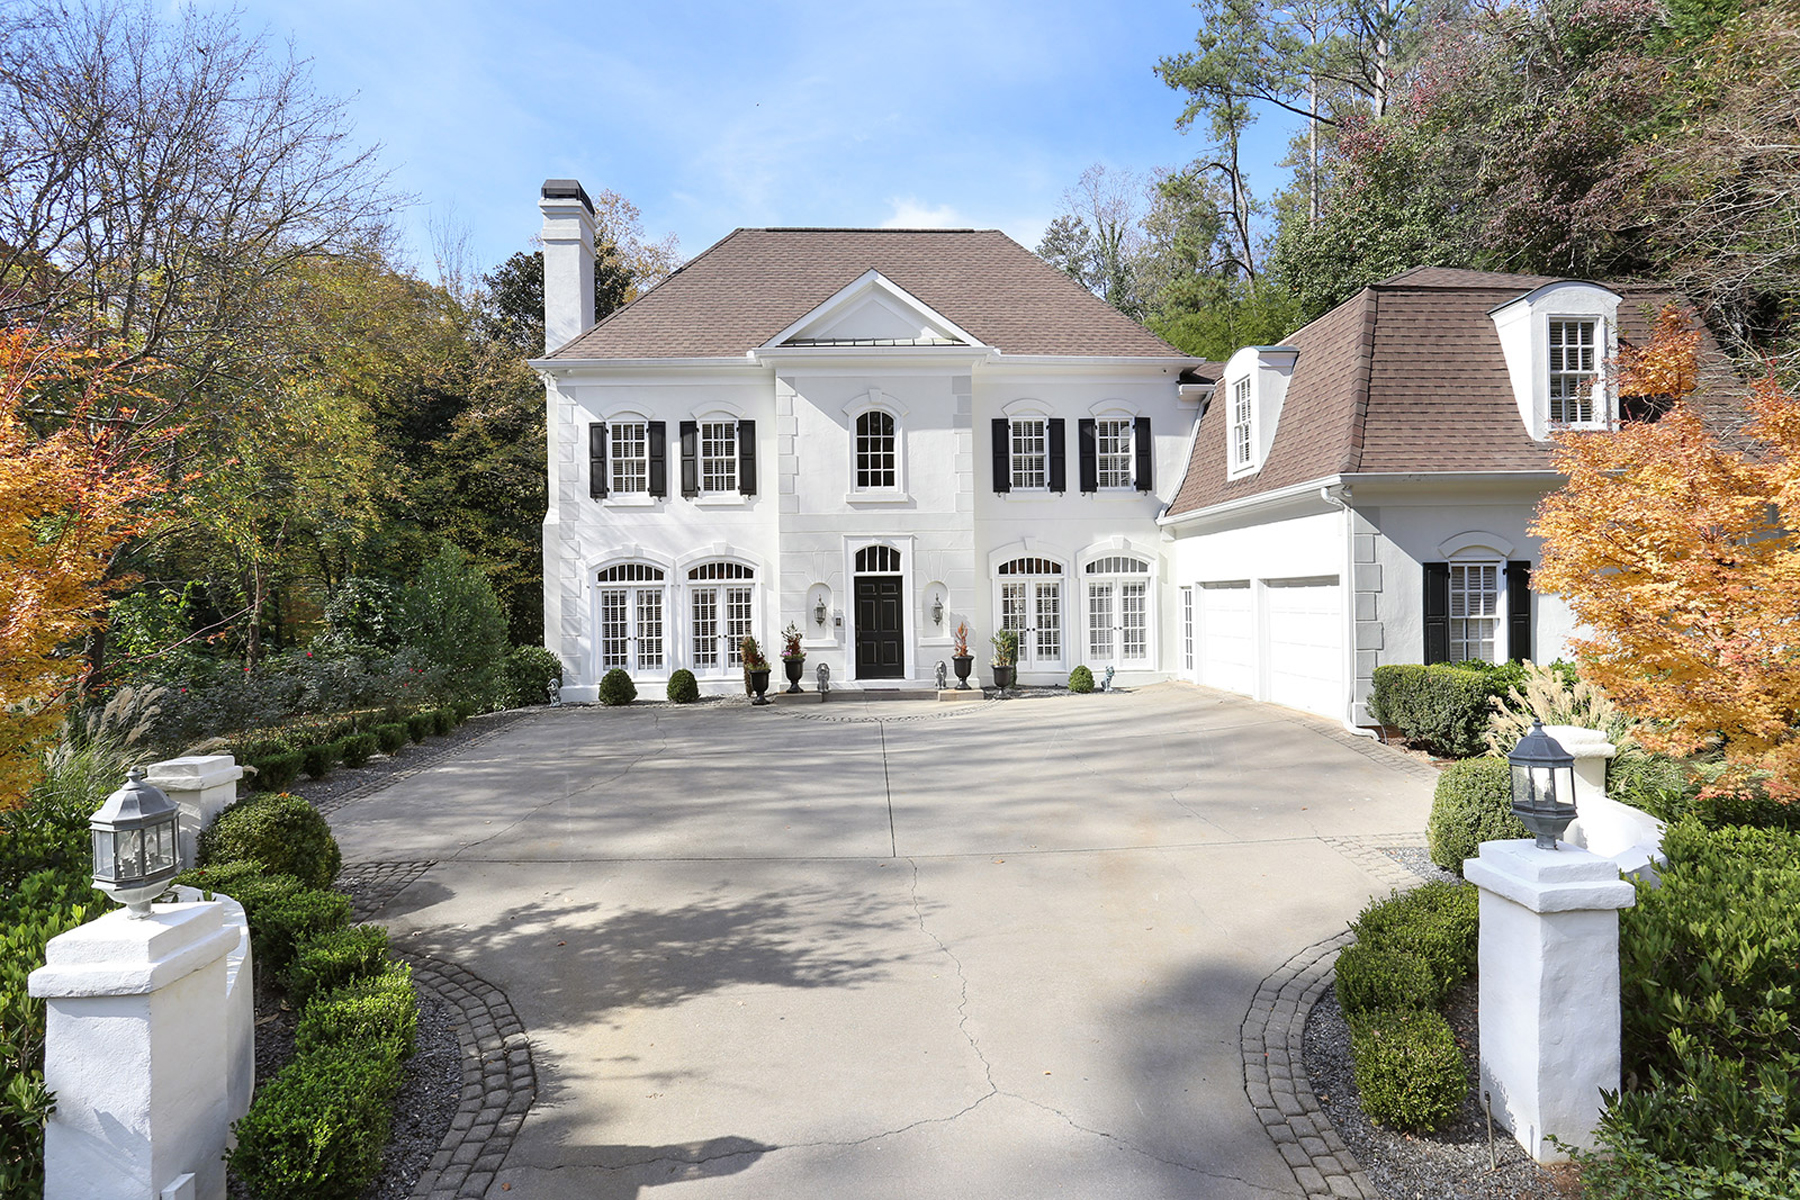 Sophisticated French Provincial located in desirable Chastain Park 4401 Jett Place NW Atlanta, Georgia 30327 United States